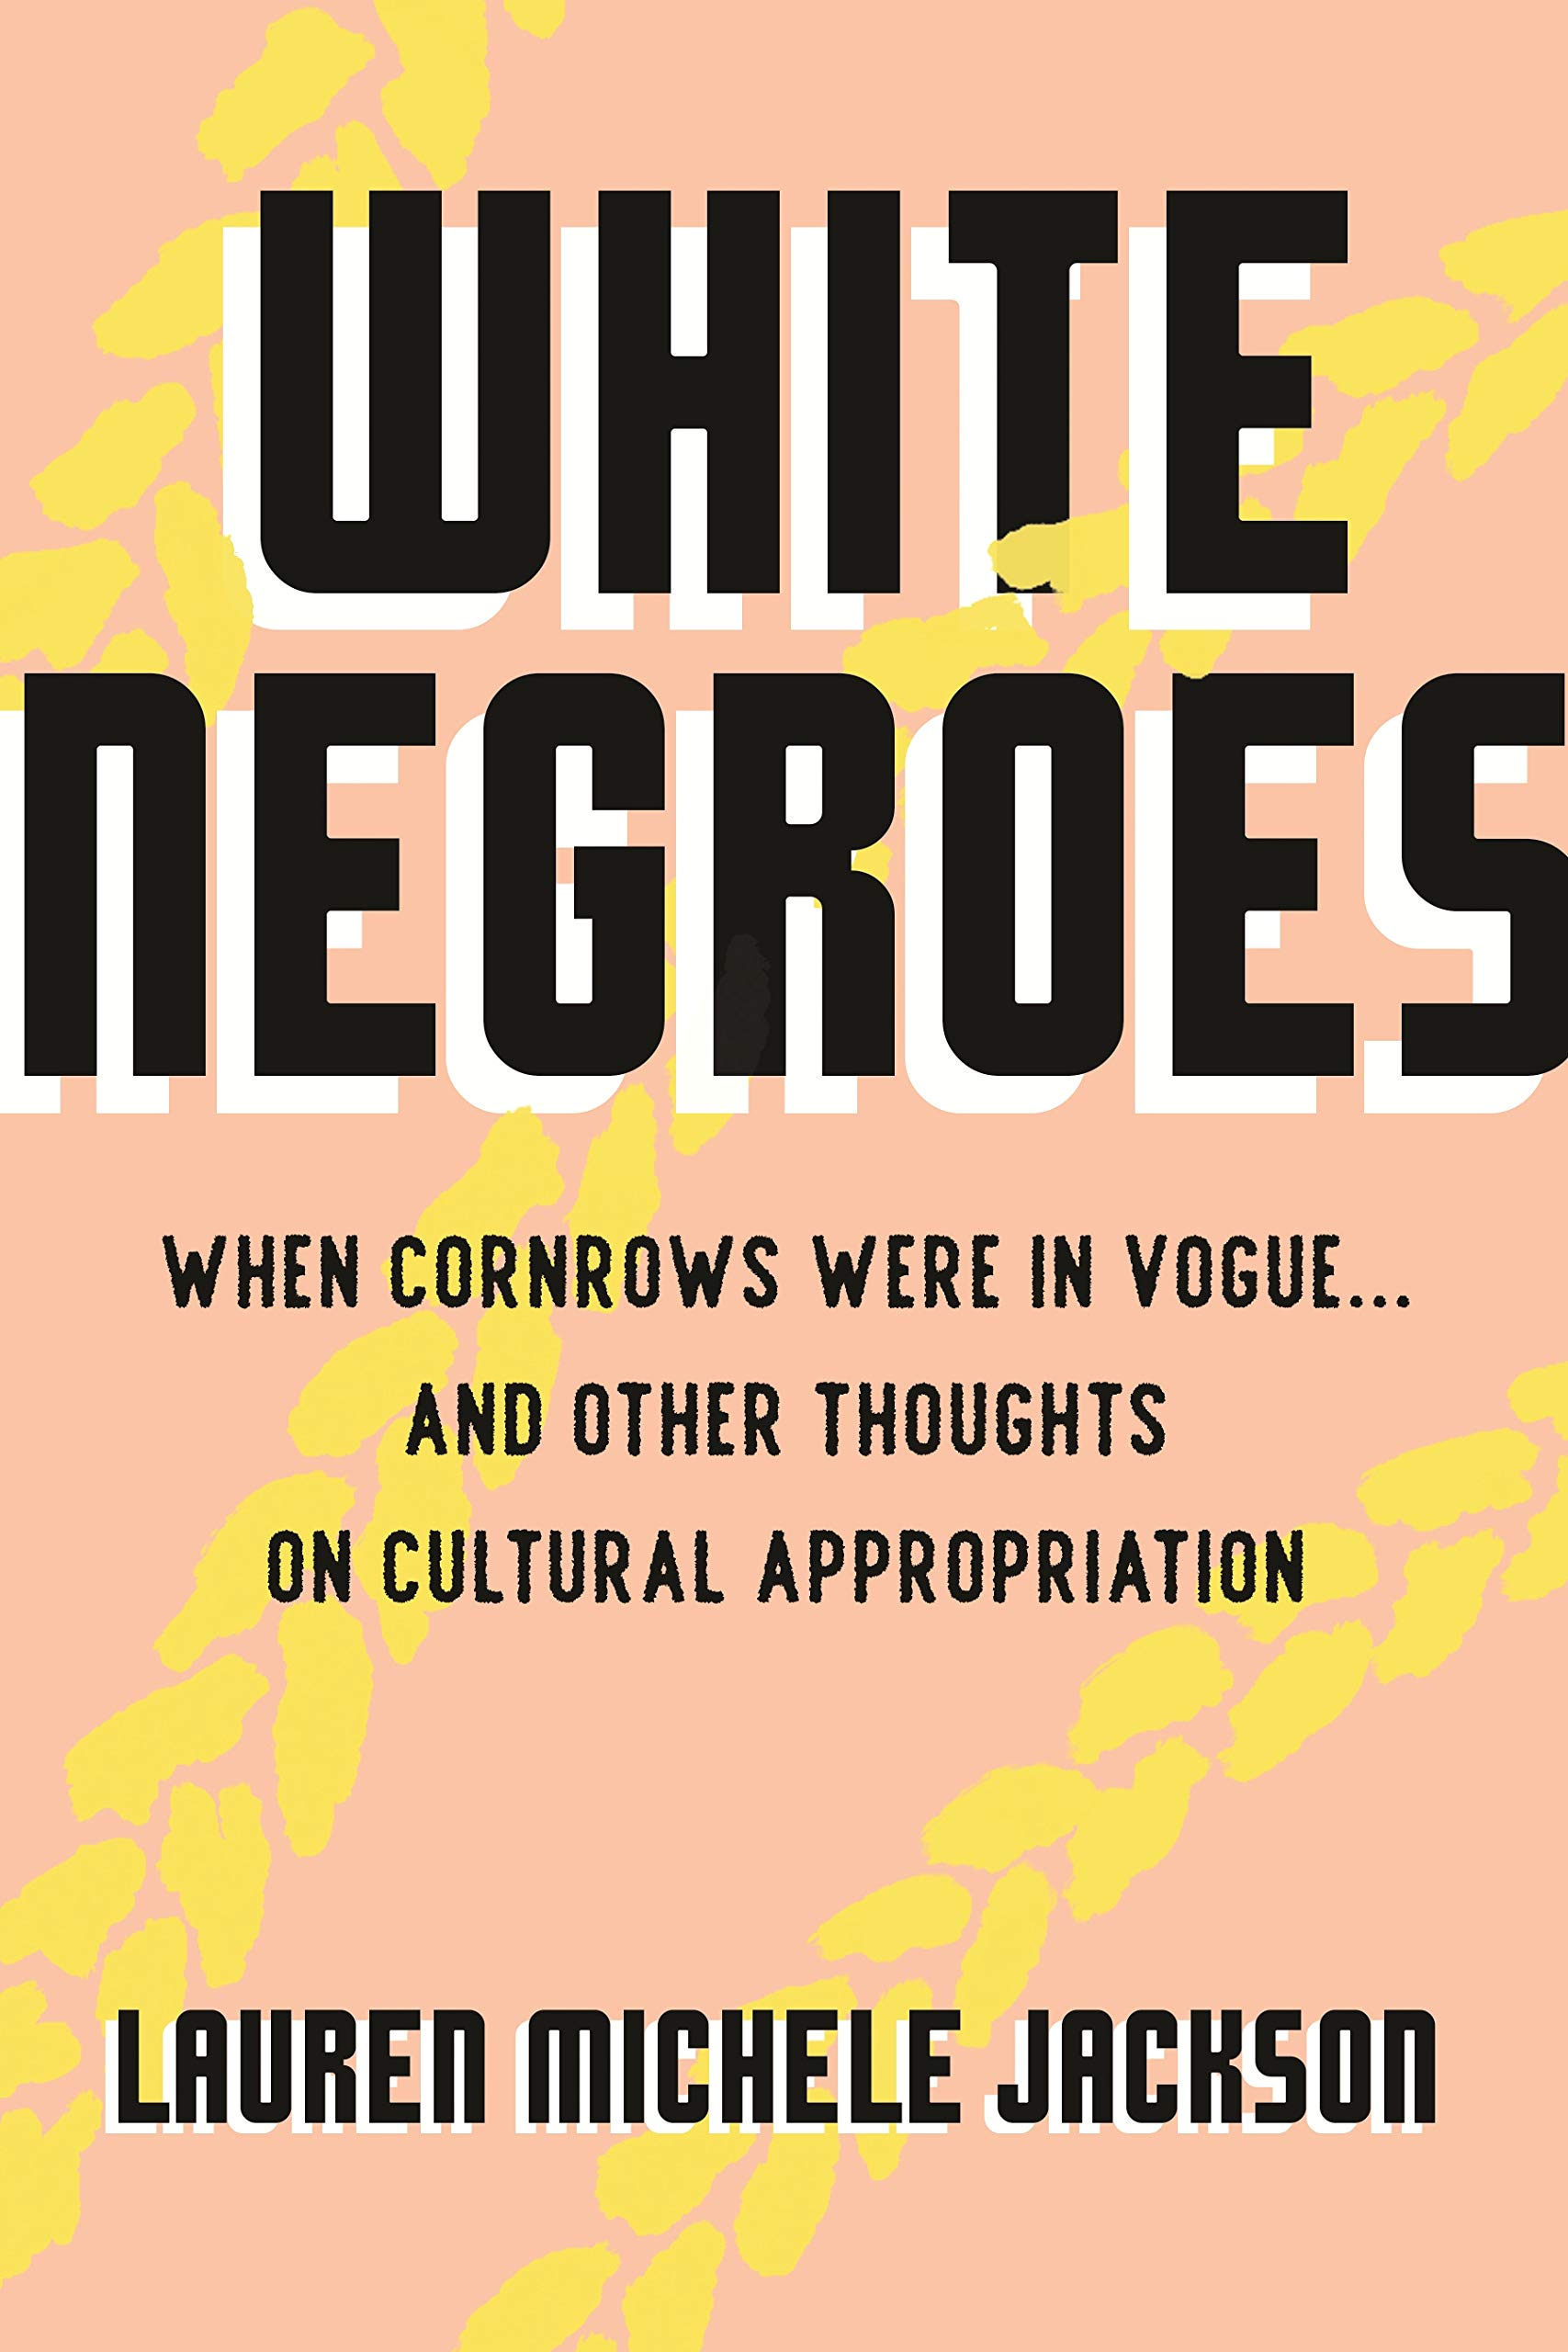 American culture loves blackness. From music and fashion to activism and language, black culture constantly achieves worldwide influence. Yet, when it comes to who is allowed to thrive from black hipness, the pioneers are usually left behind as black aesthetics are converted into mainstream success--and white profit. White Negroes exposes the new generation of whiteness thriving at the expense and borrowed ingenuity of black people—and explores how this intensifies racial inequality.  Release date: November 12, 2019.